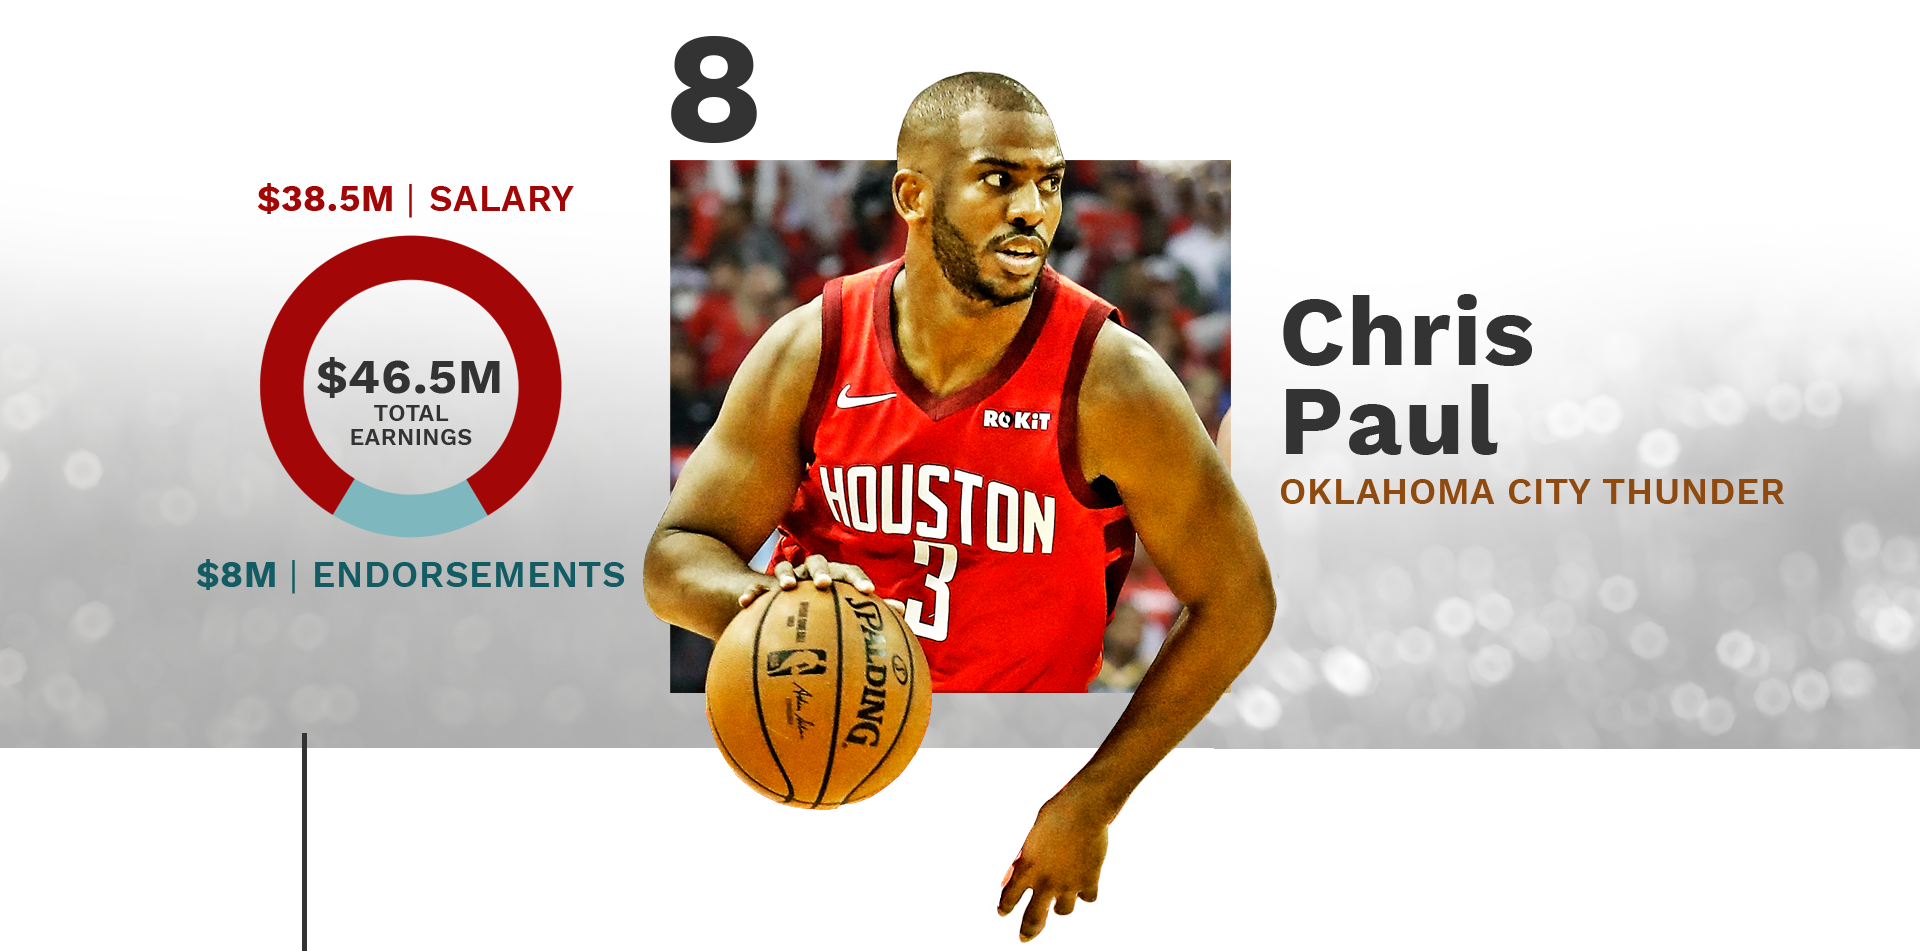 #8: Chris Paul